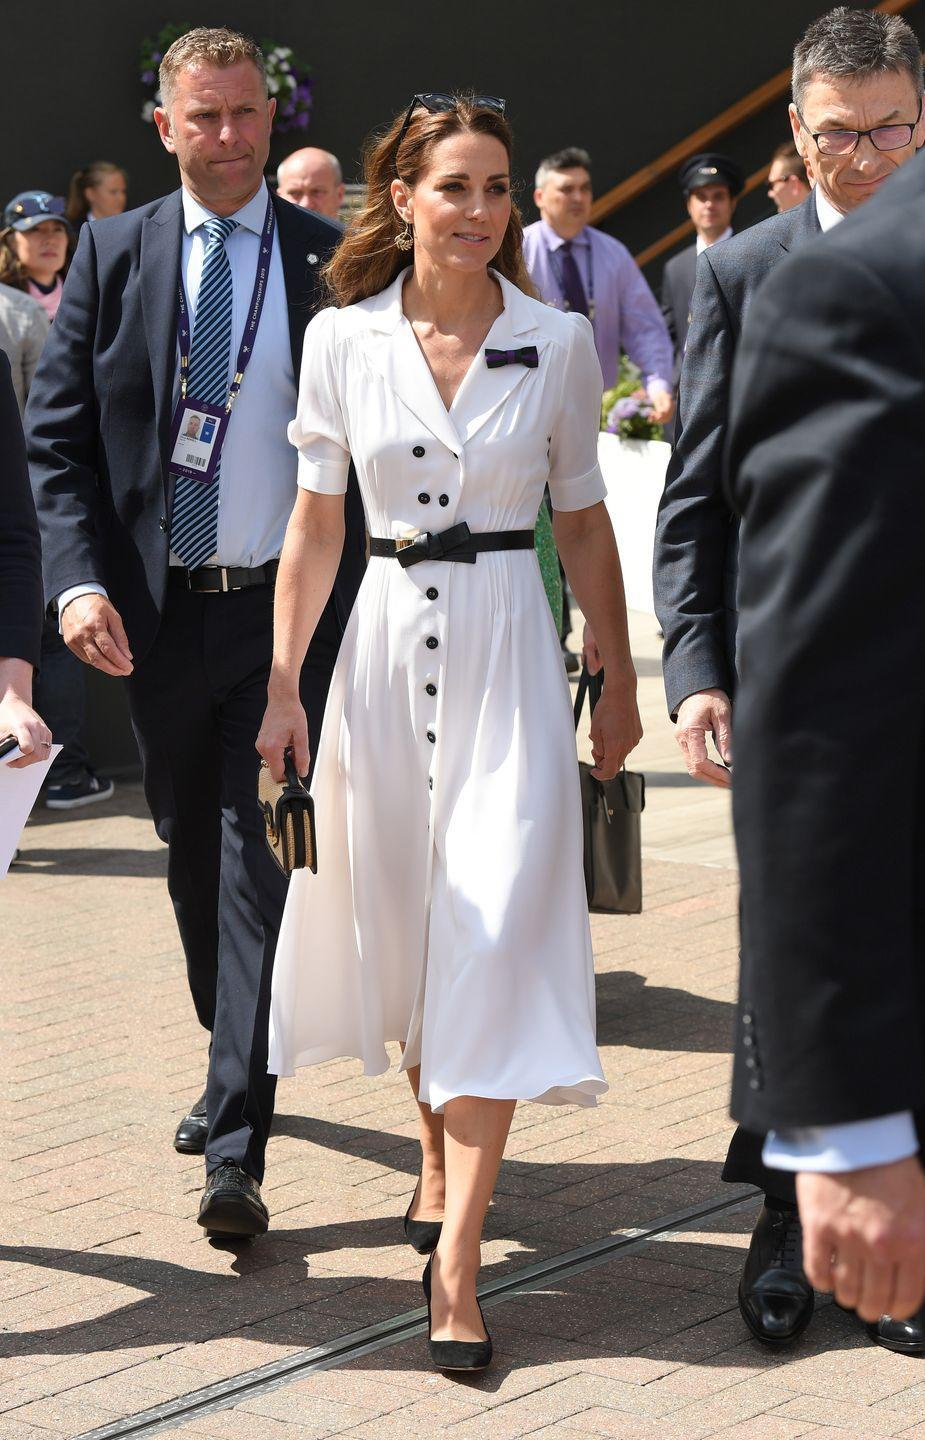 <p>The Duchess of Cambridge wore a white midi dress by Suzannah which she paired with a belt and an Alexander McQueen bag for the tennis competition.</p>